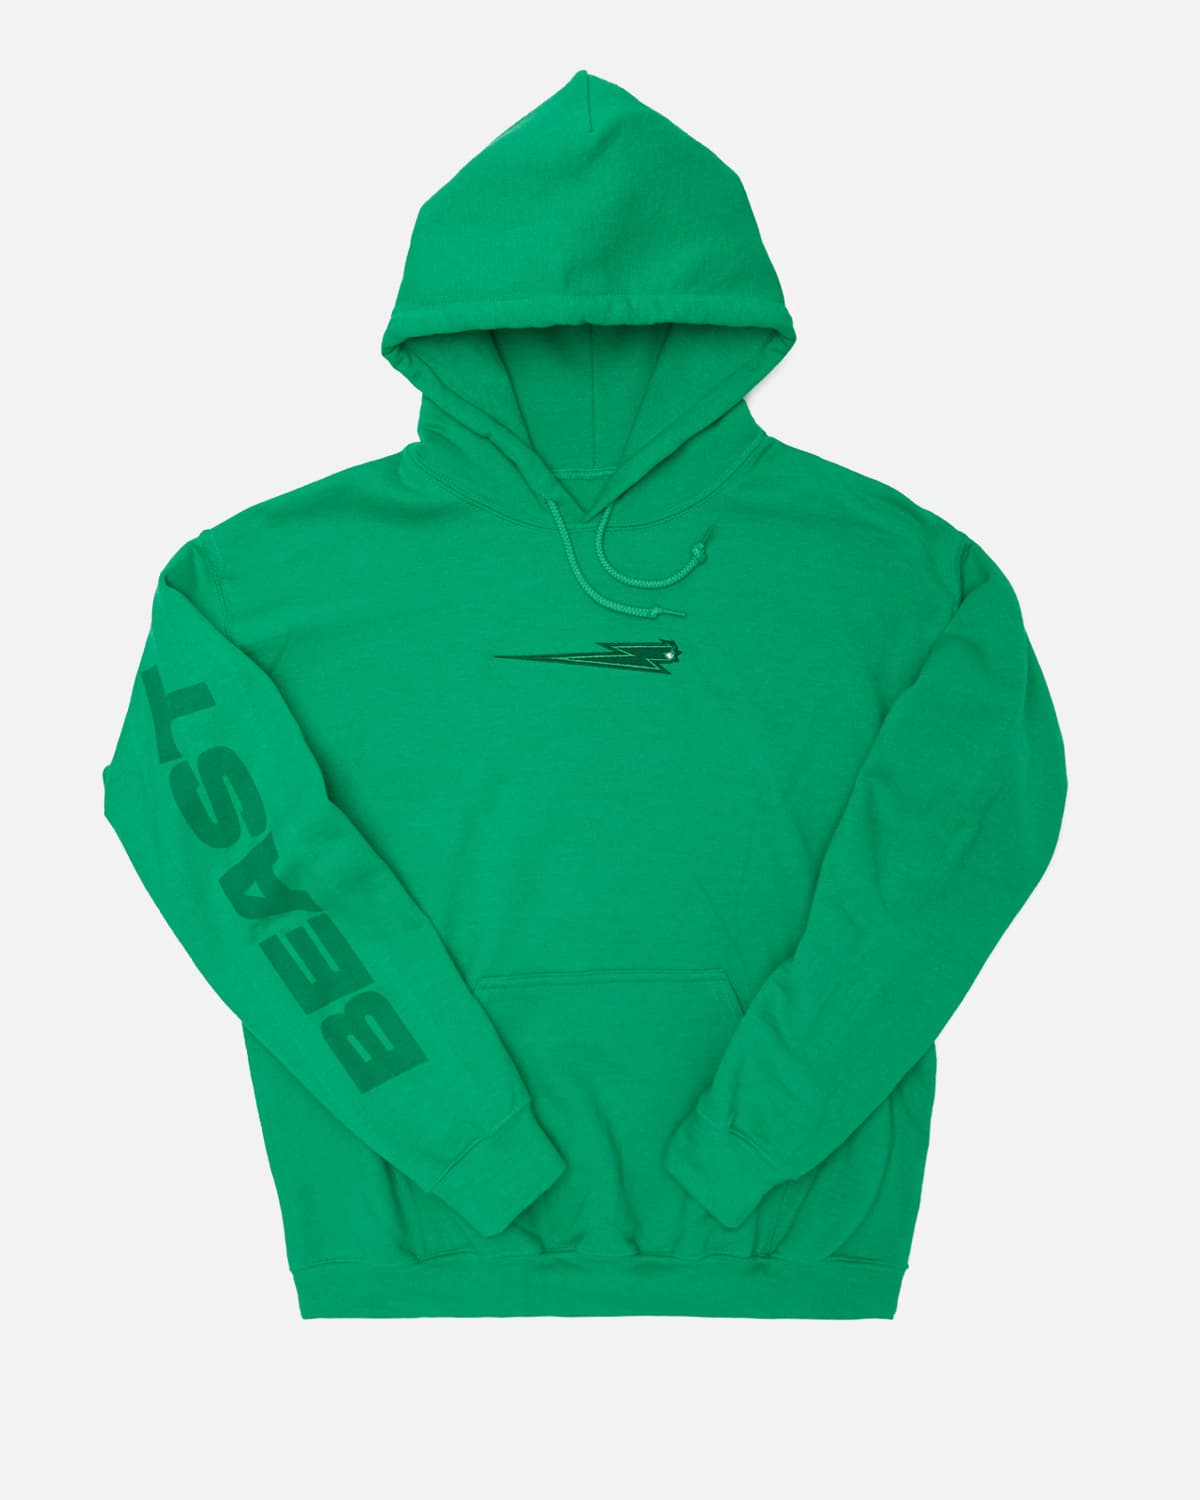 'Beast Bolt' Embroidered Pull Over Hoodie - Green